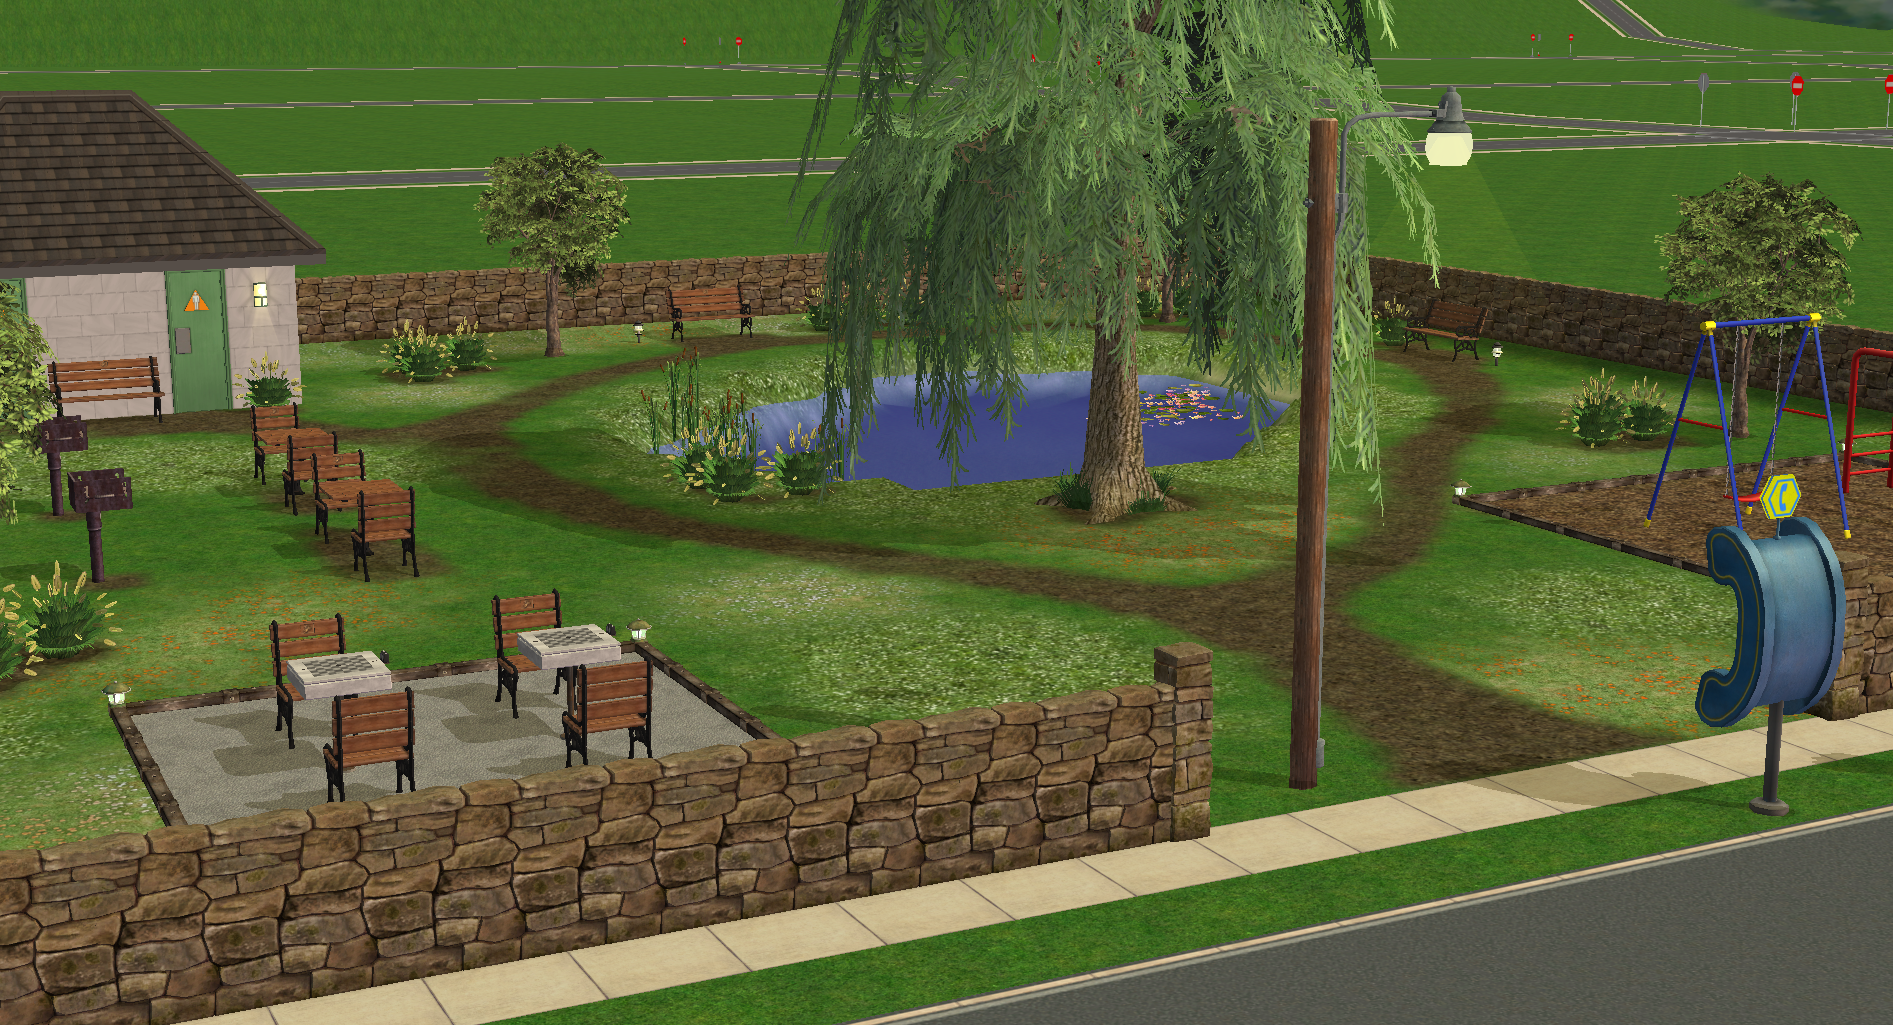 Another view of Linden Park.